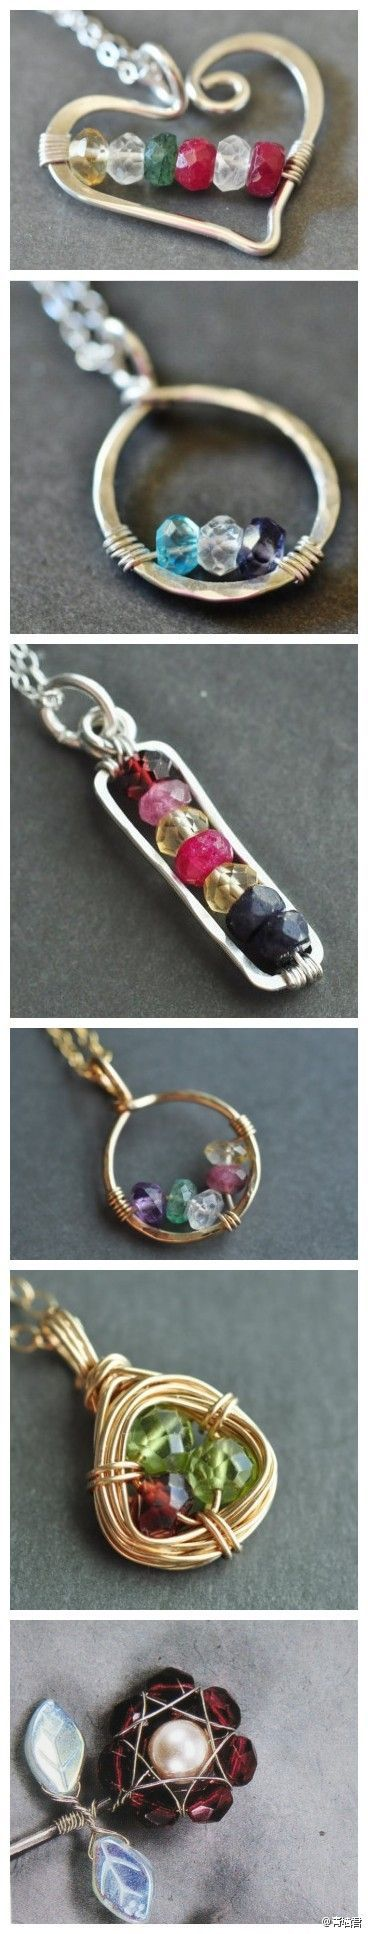 my sister-in-law, showed me how to make this bent wire jewelry, although I'm...